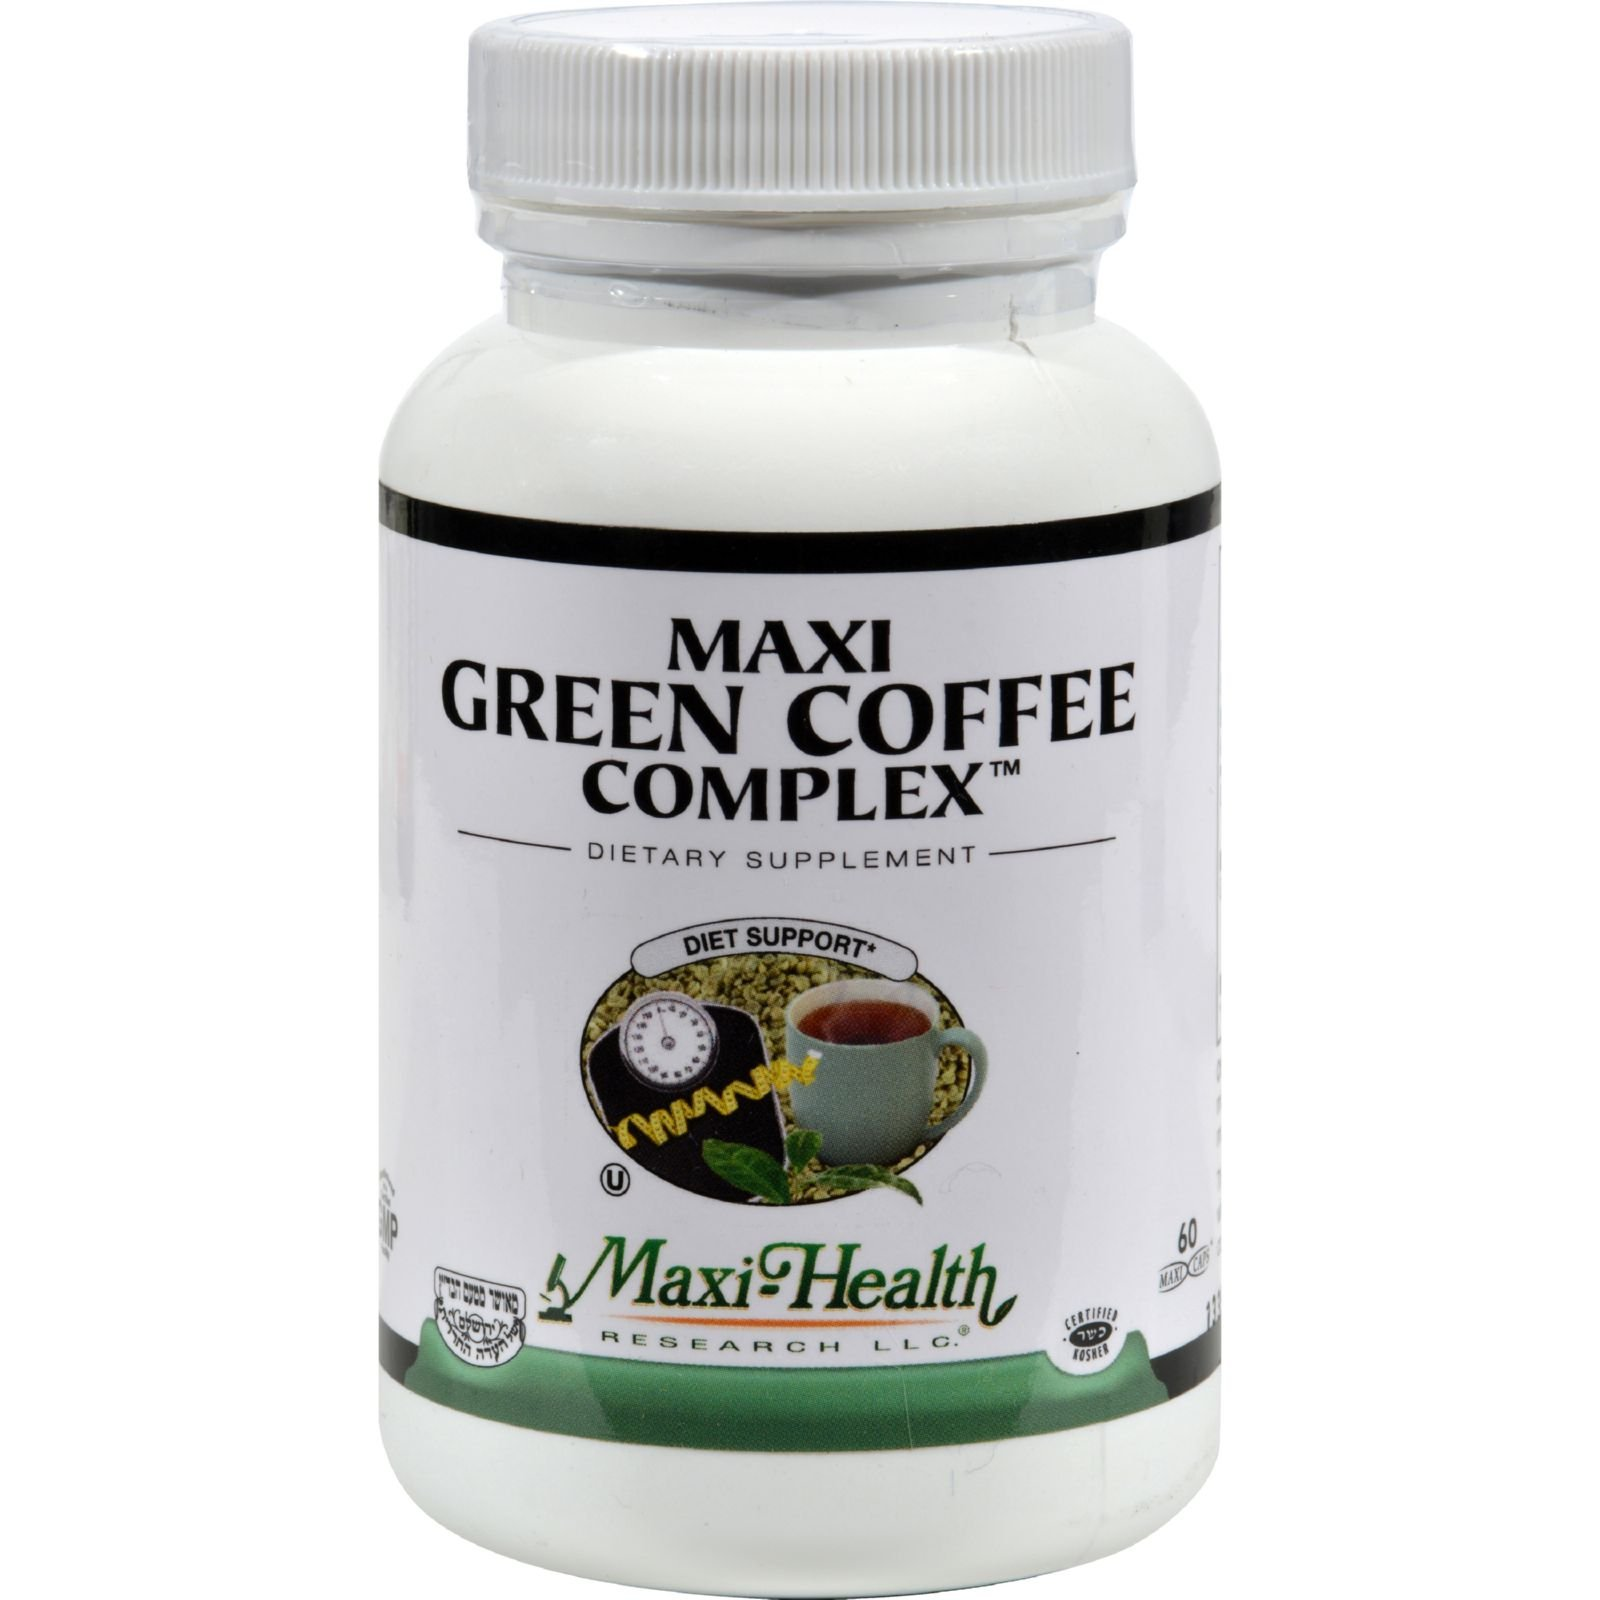 Maxi Health Kosher Vitamins Maxi Green Coffee Complex - Diet Support - 60 Vegetarian Capsules (Pack of 2)